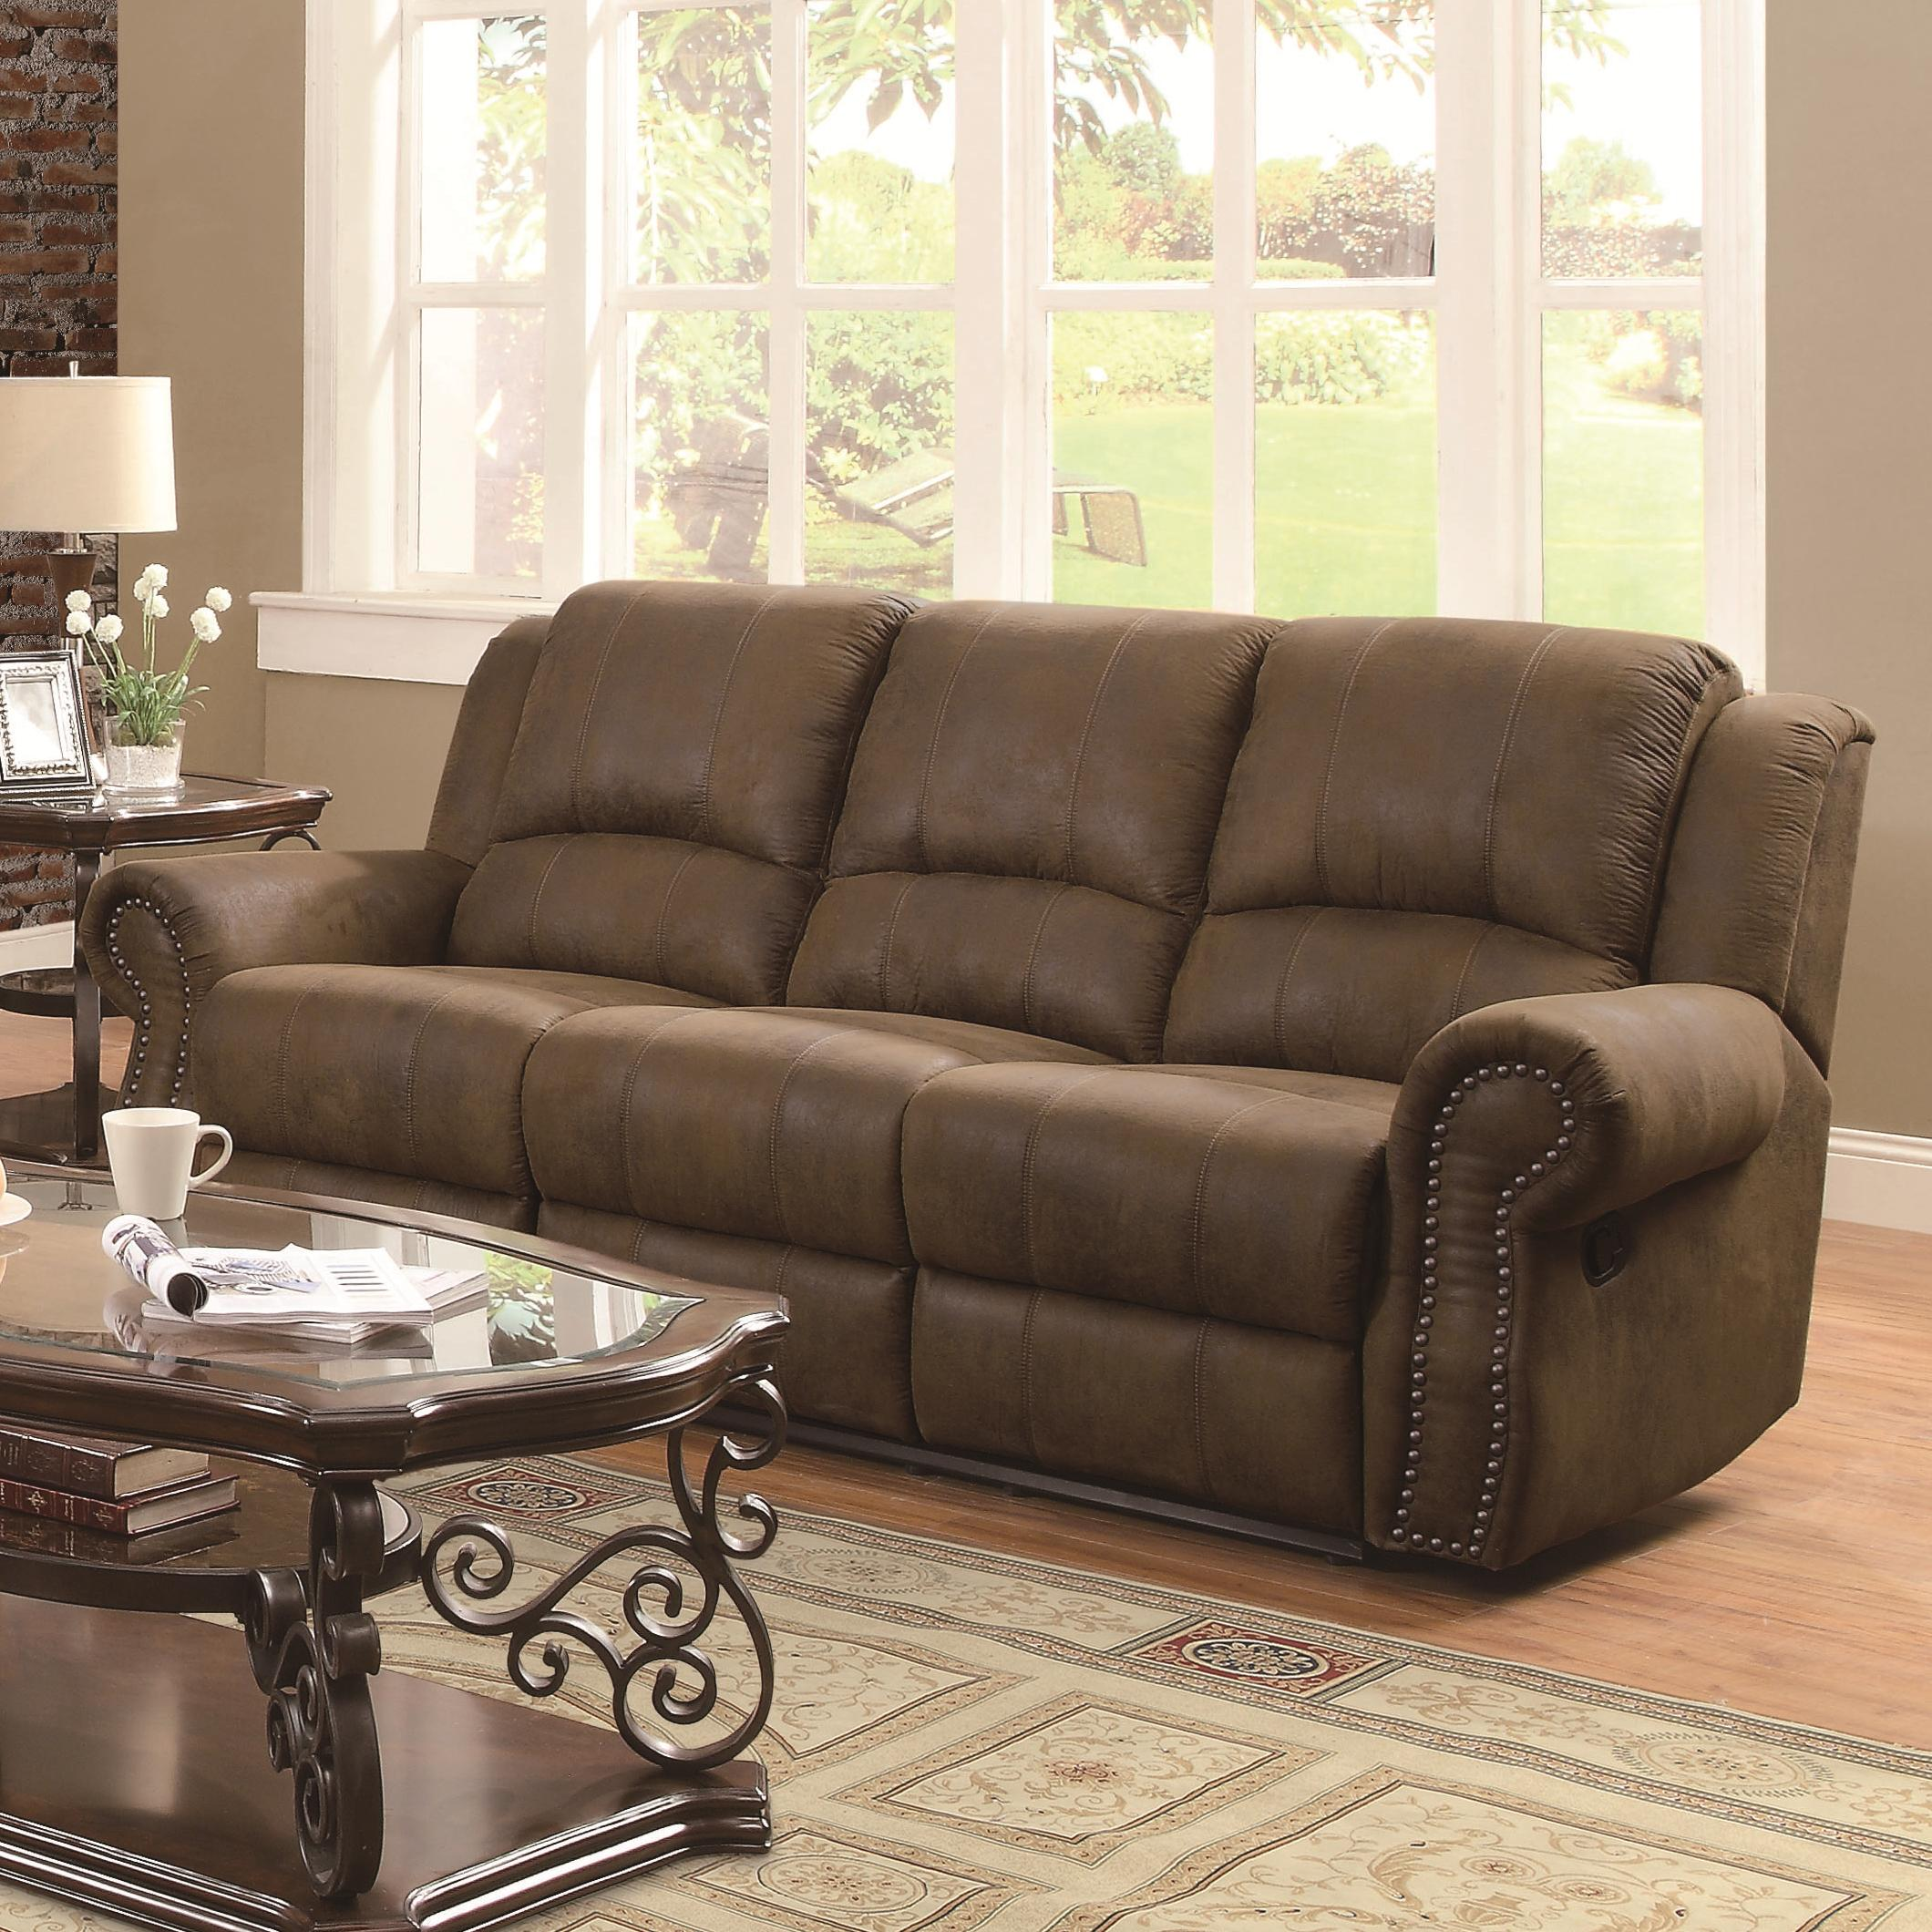 Coaster sir rawlinson 650151 traditional reclining sofa for Sofa with studs